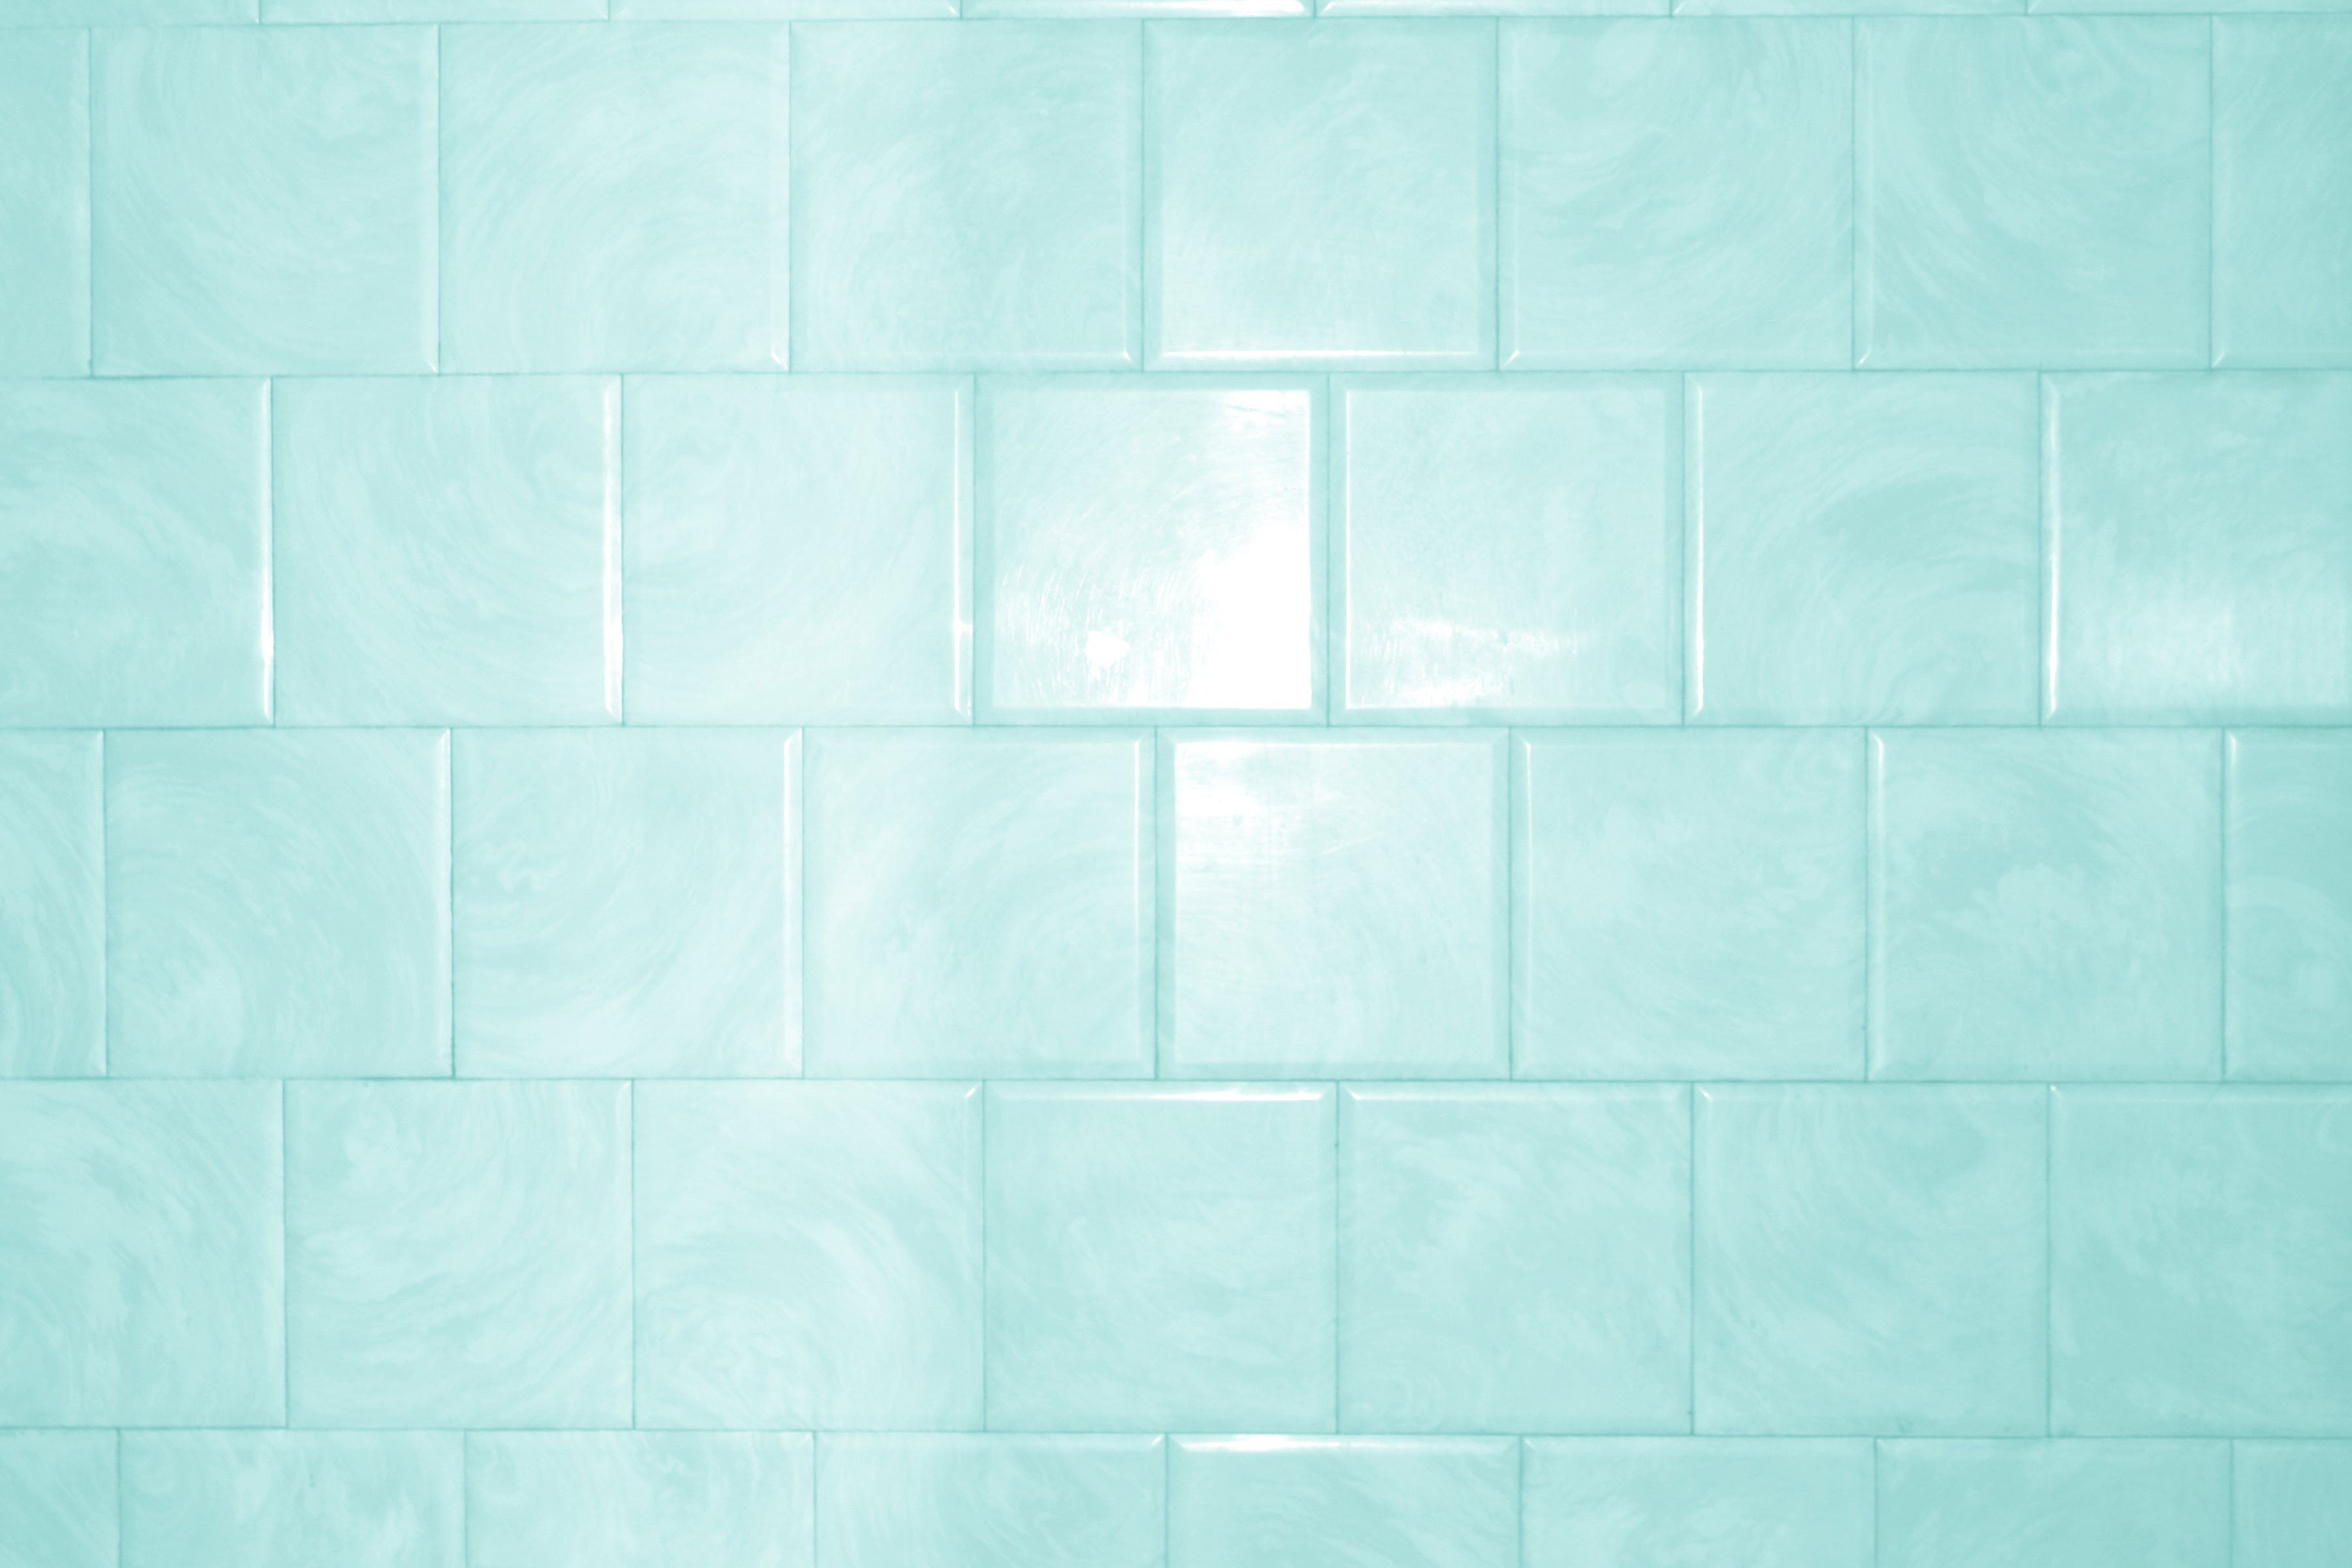 Aqua or Teal Colored Bathroom Tile Texture with Swirl ...